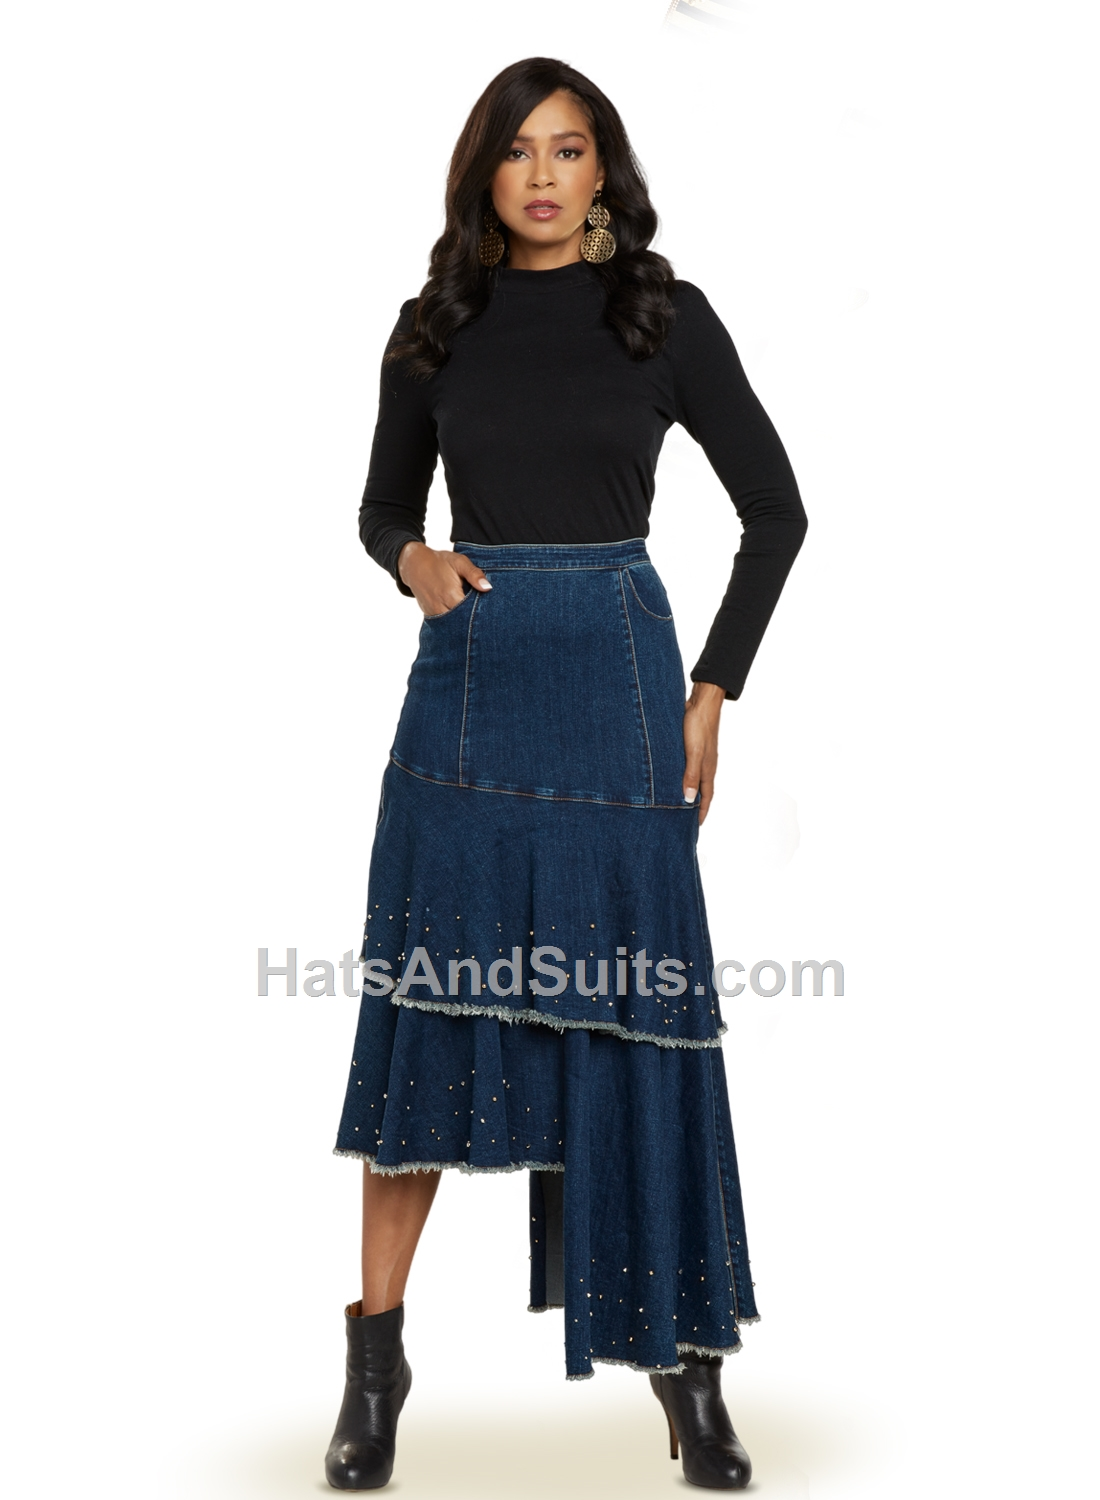 8442 DV Jeans 1 Pc. Skirt. FL20